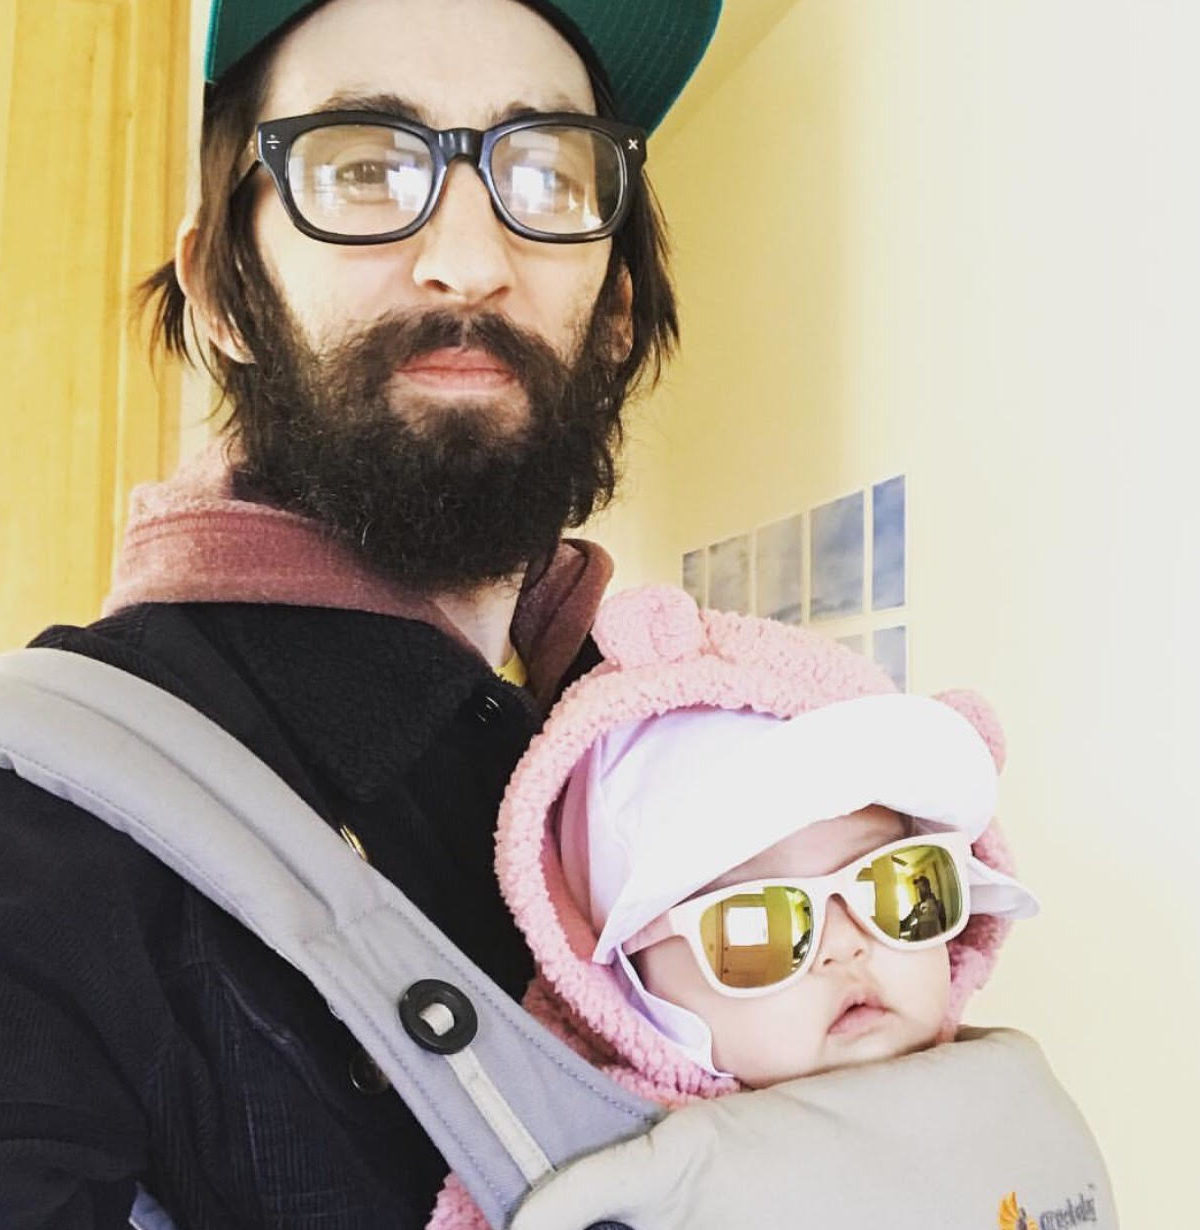 Dave and his daughter, Boogie